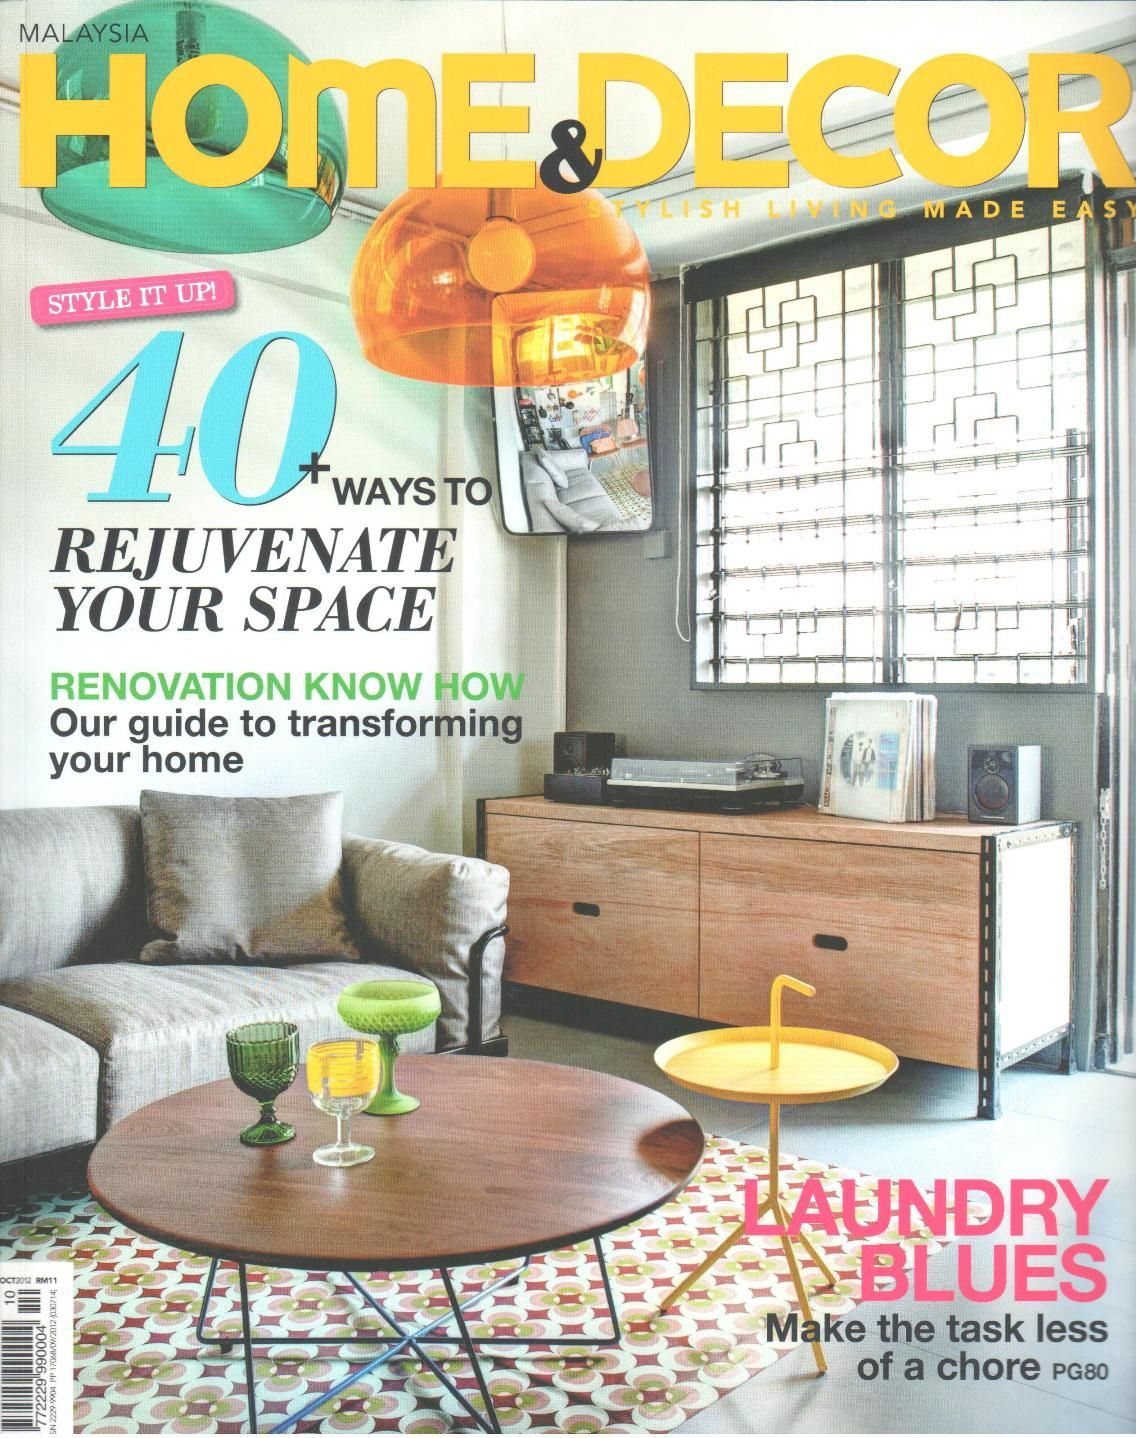 Superieur Home Decorating Idea Magazines